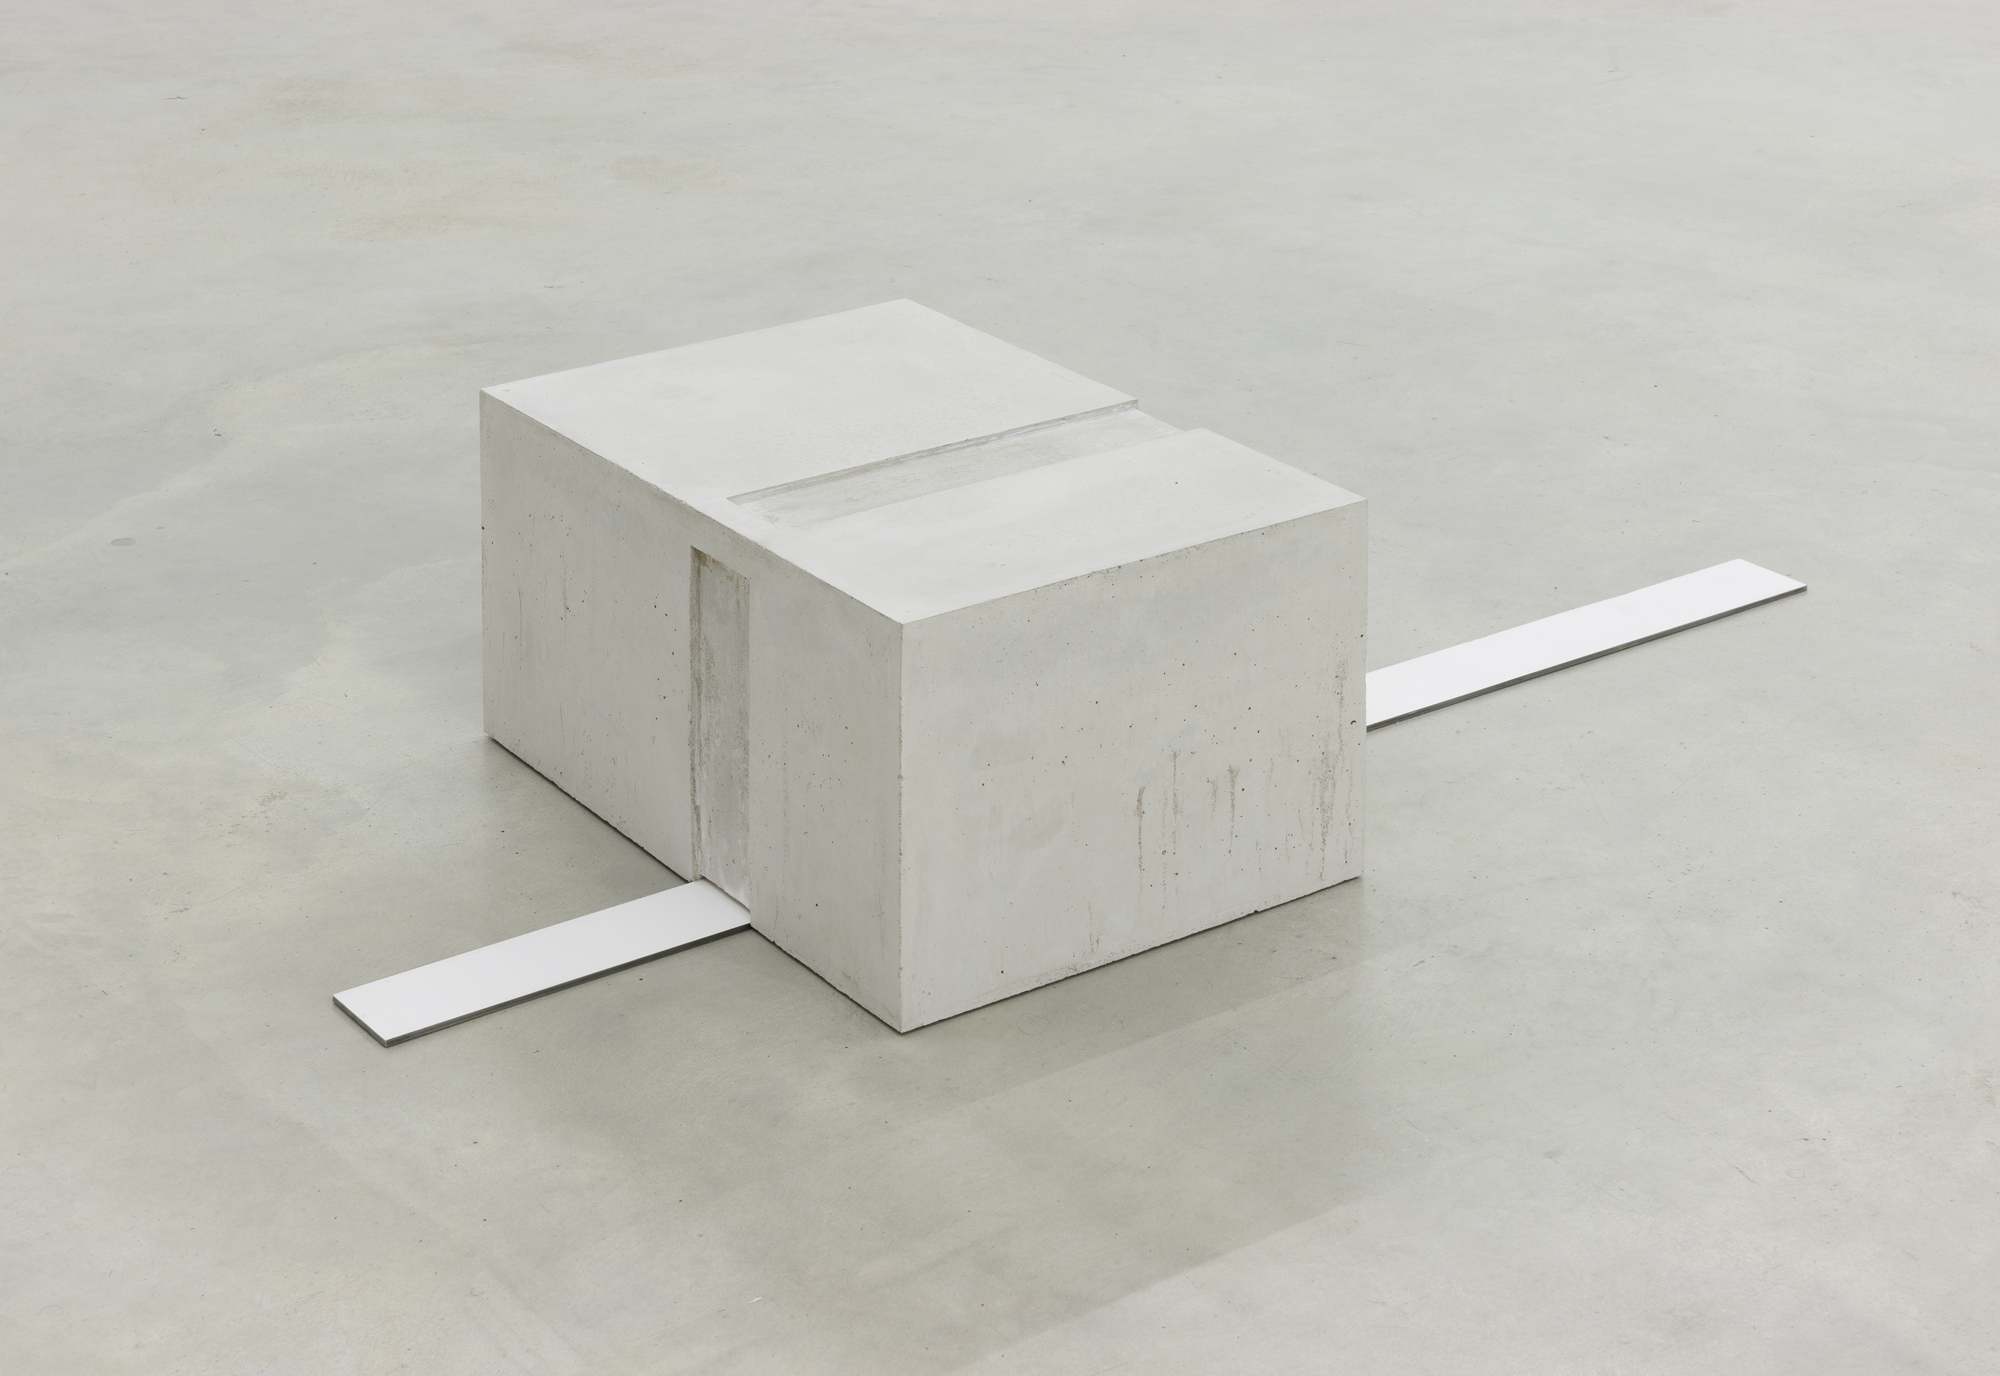 Division Exercise, concrete and painted iron, 30 x 135 x 60 cm, 2015